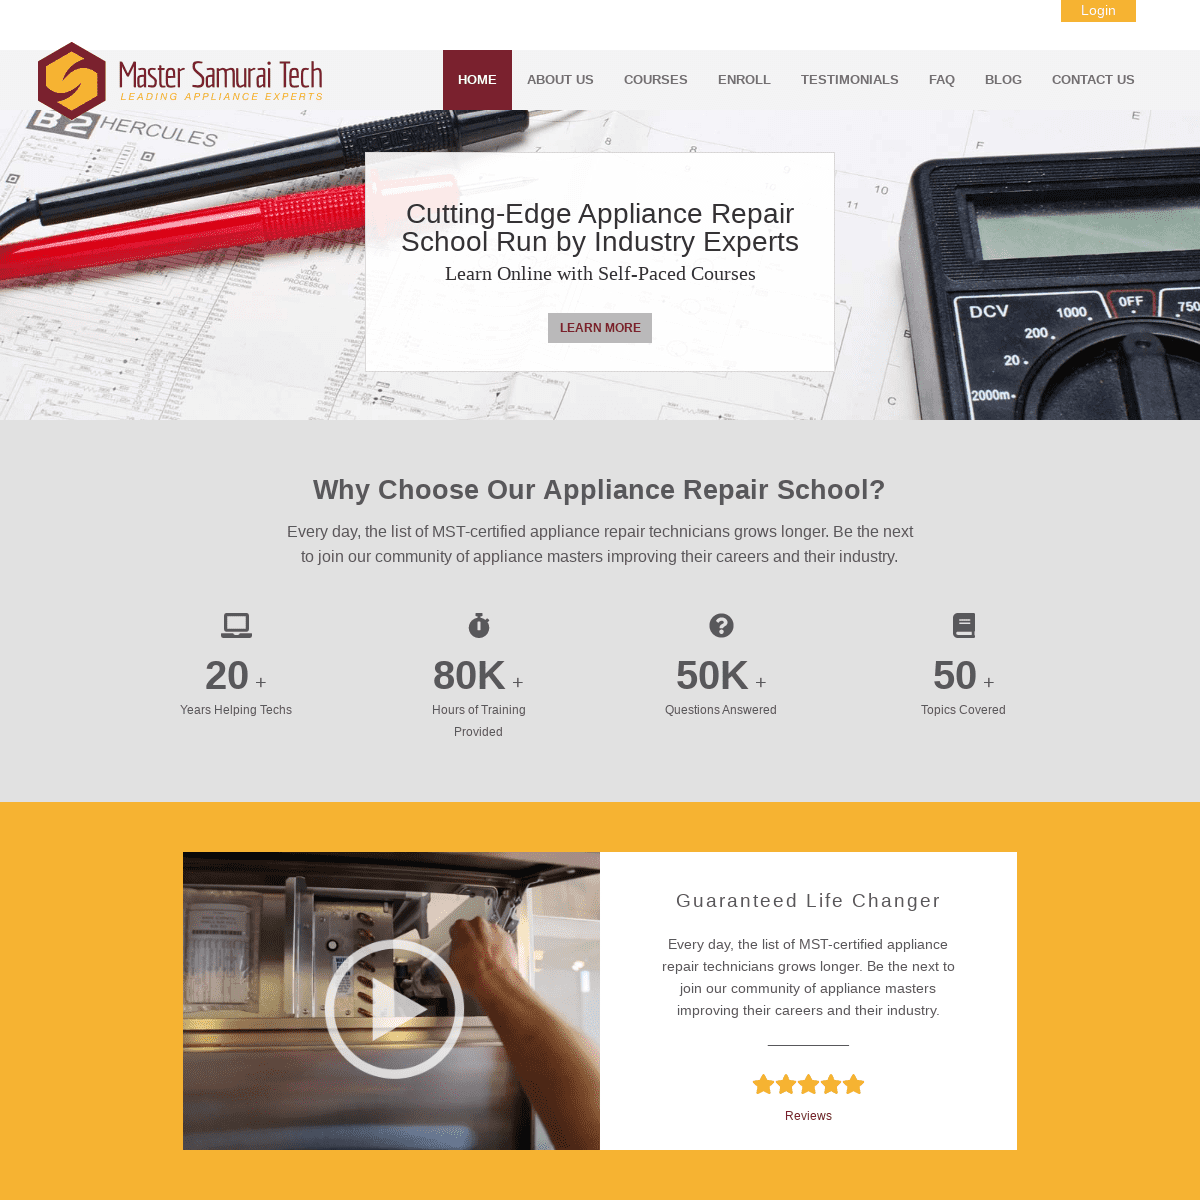 Appliance Repair School- Learn More, Earn More - Master Samurai Tech